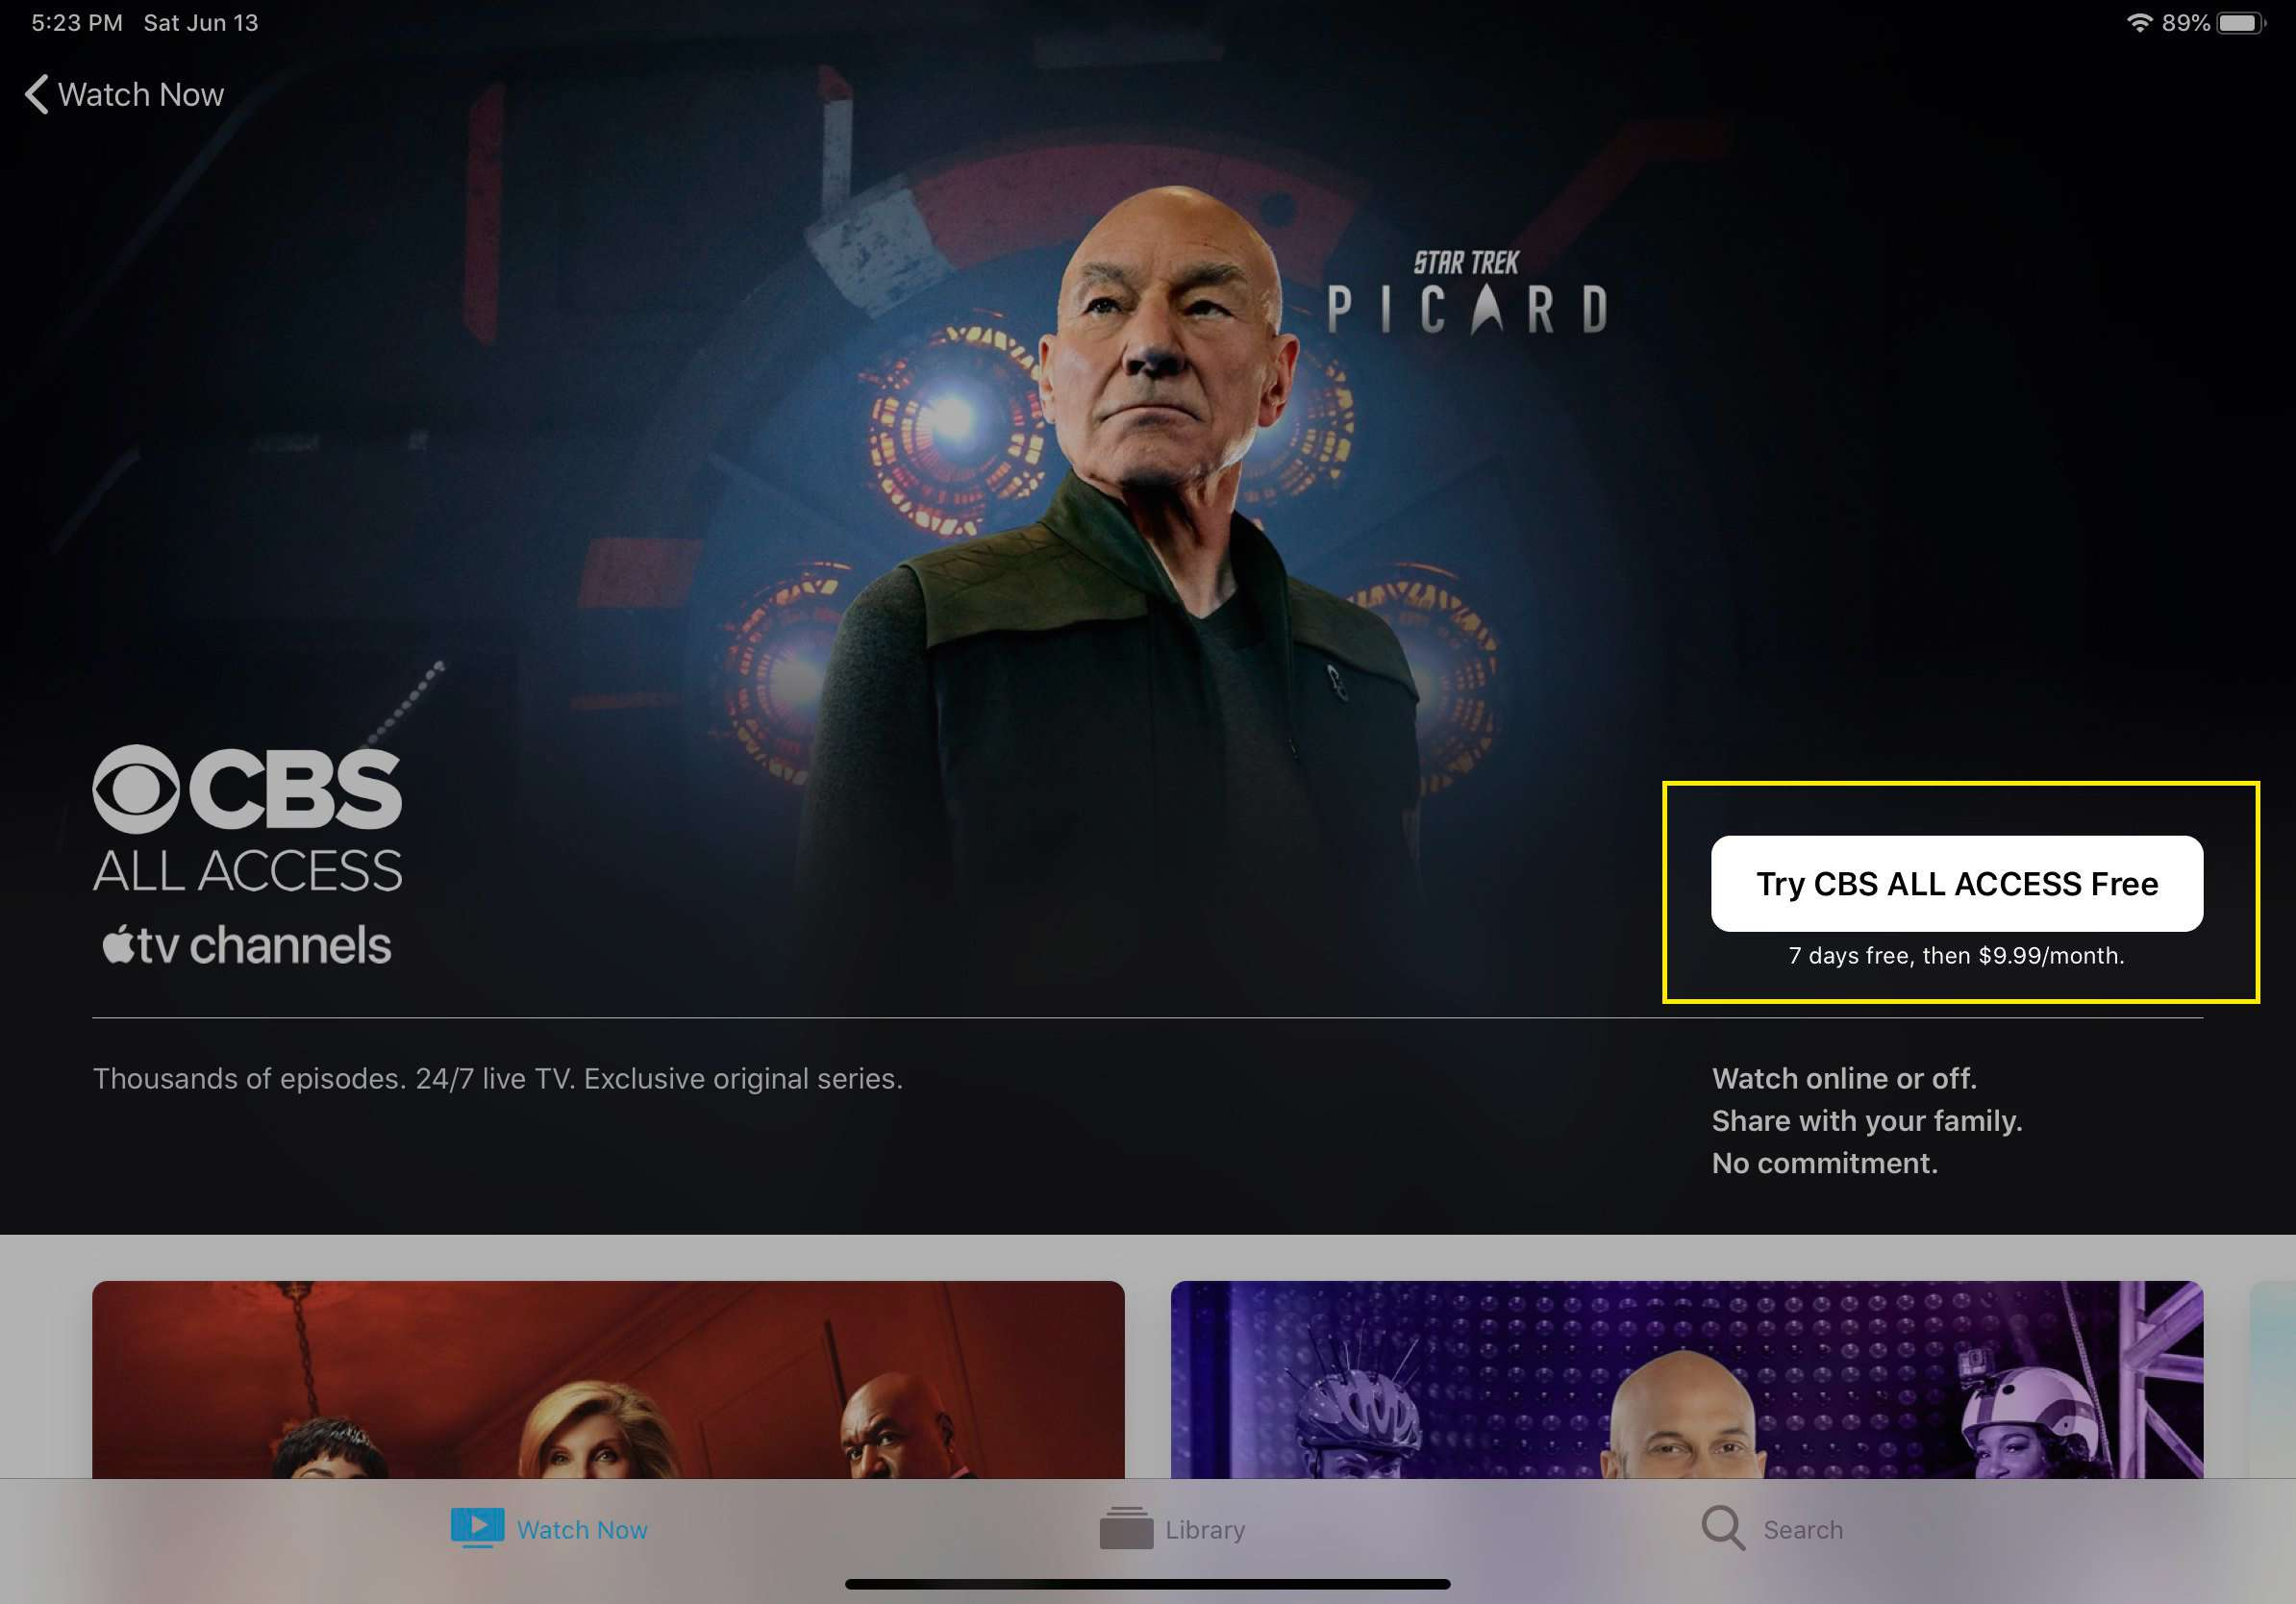 CBS All Access in Apple TV channel with free trial offer highlighted